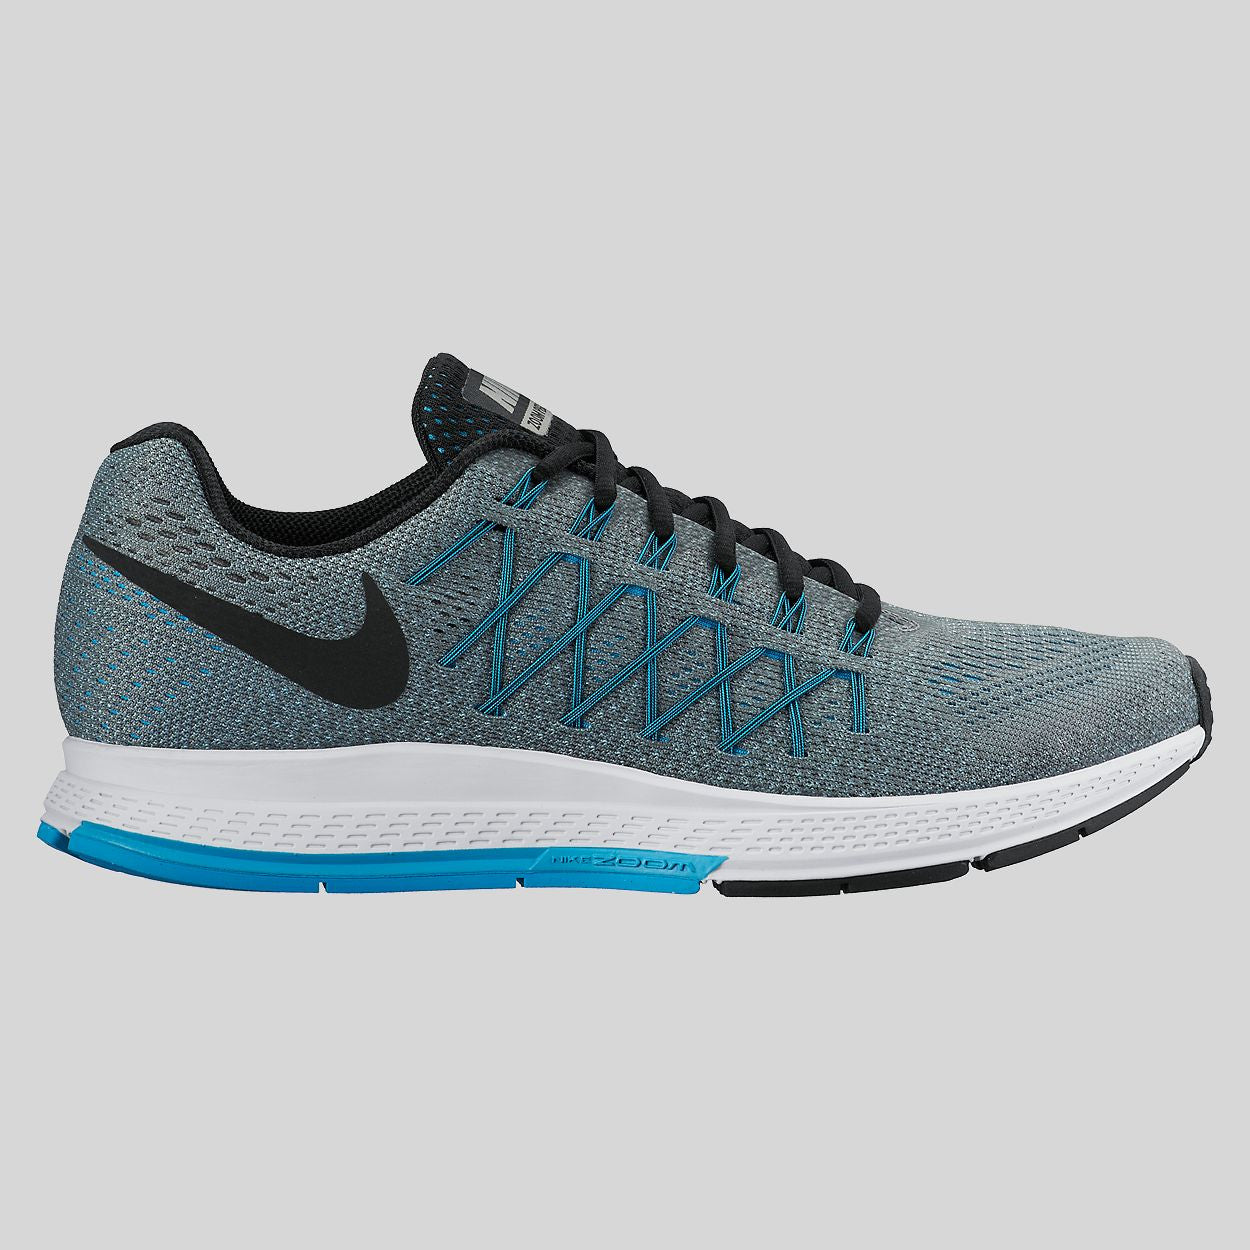 Nike Air Zoom Pegasus 32 Cool Grey Black Blue Lagoon (749340-004)